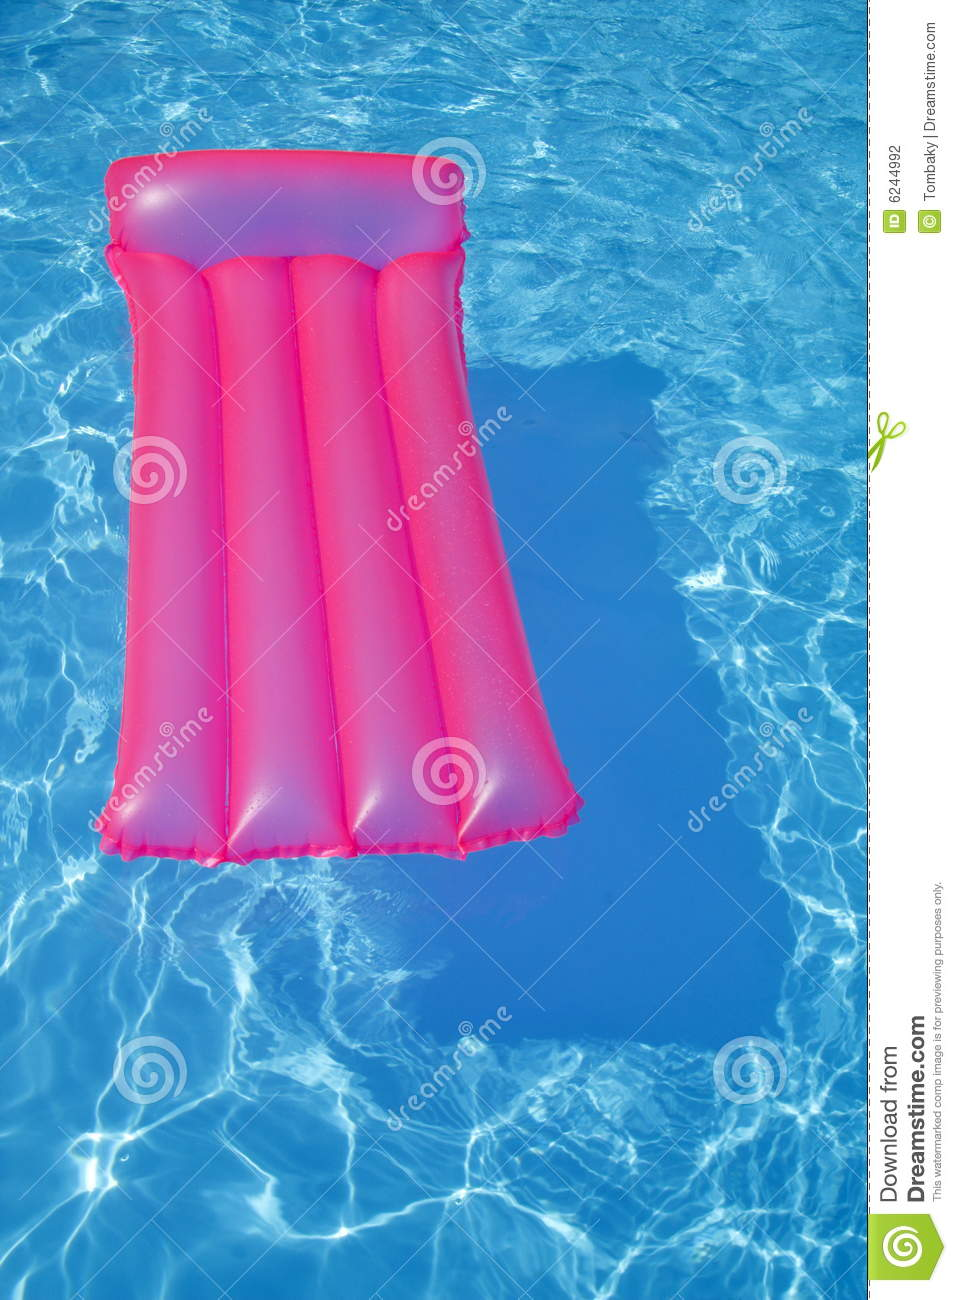 Air bed in swimming pool stock photo image of blue clear for Swimming pool bed